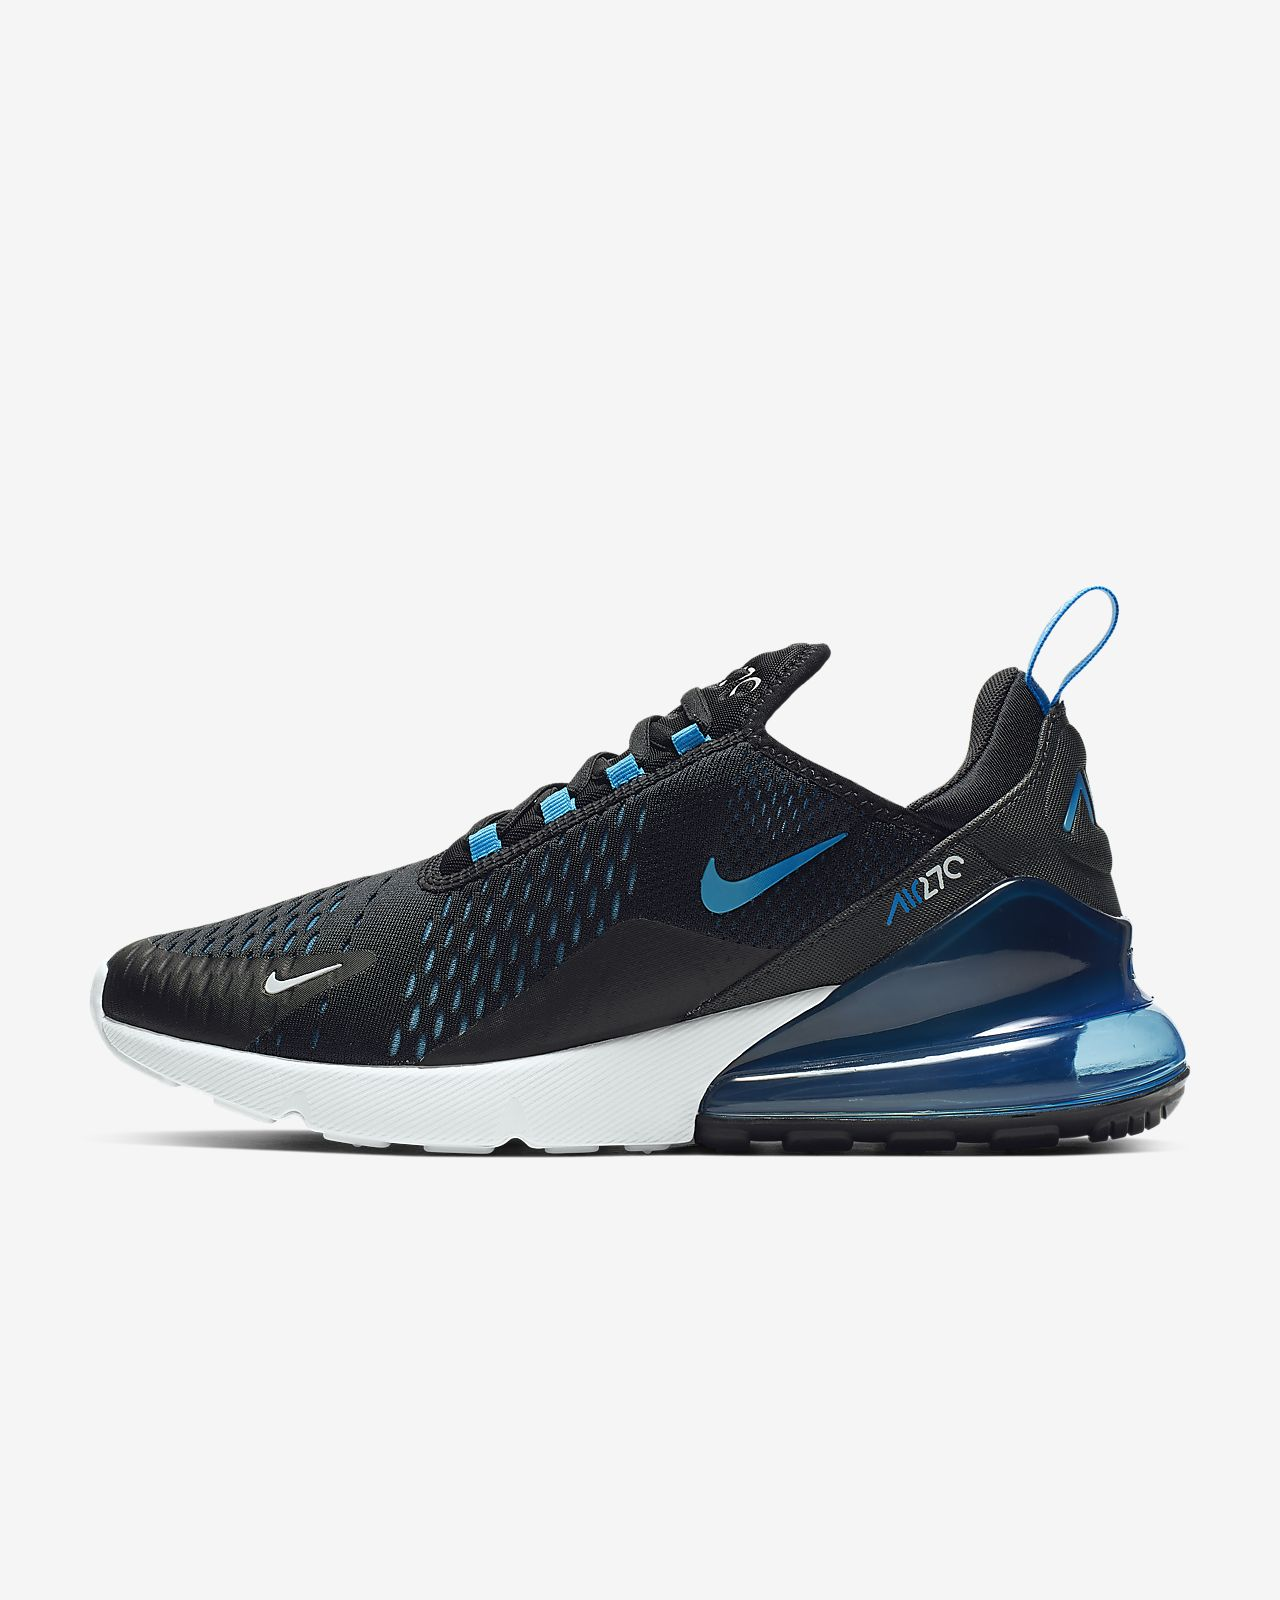 meet 70849 585dd Men s Shoe. Nike Air Max 270